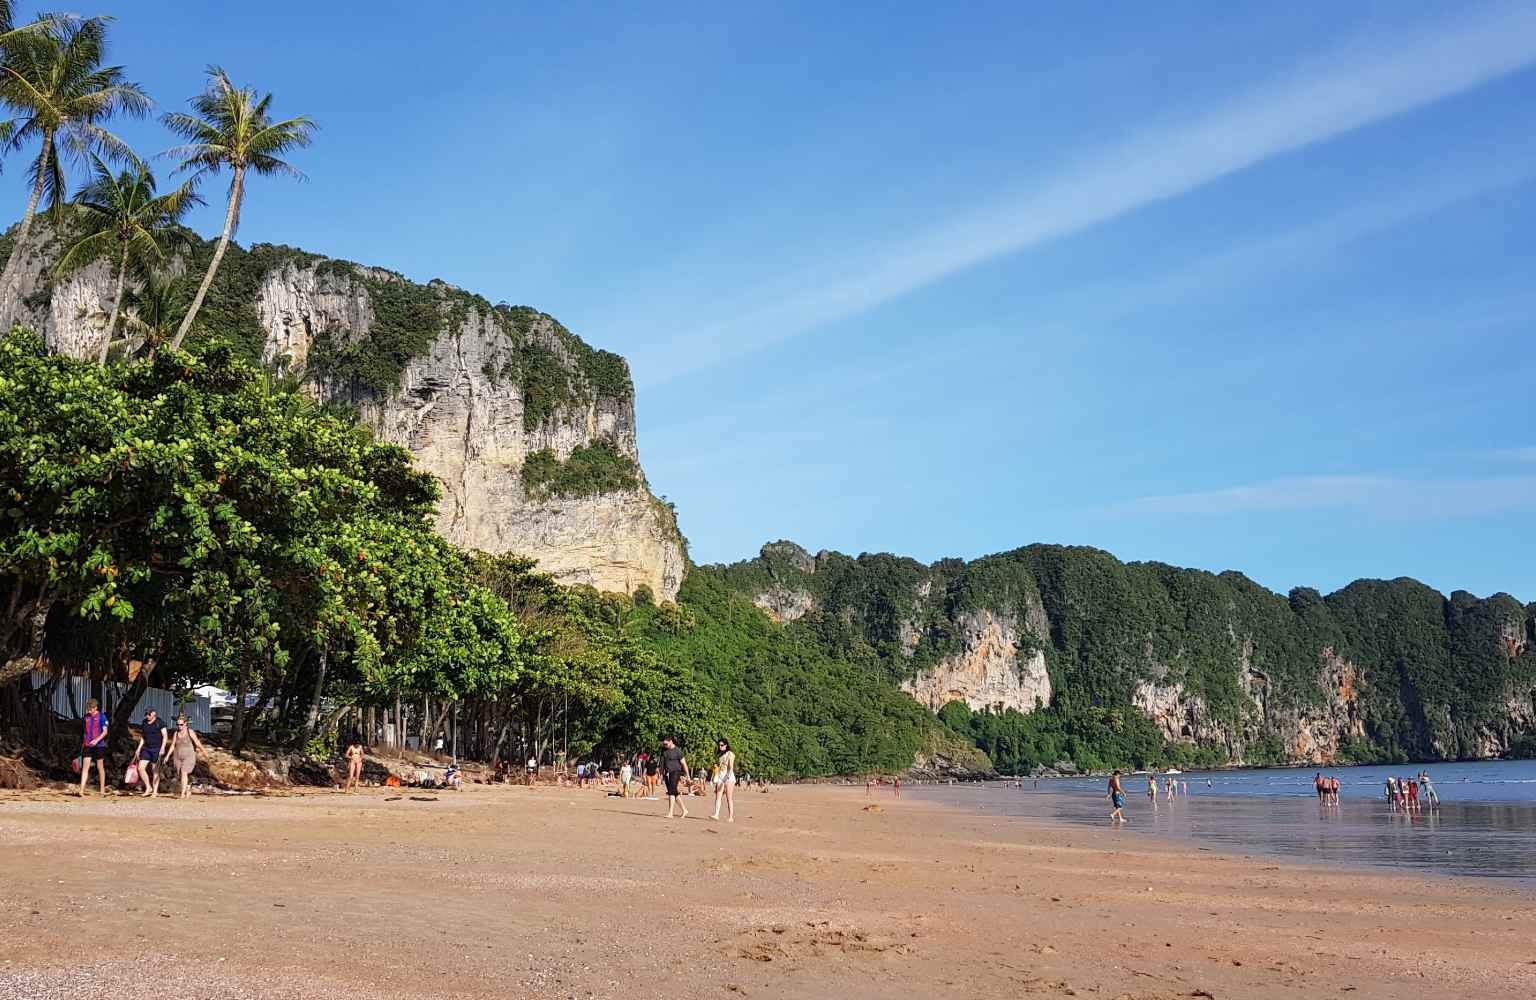 The eastern part of Ao Nang Beach